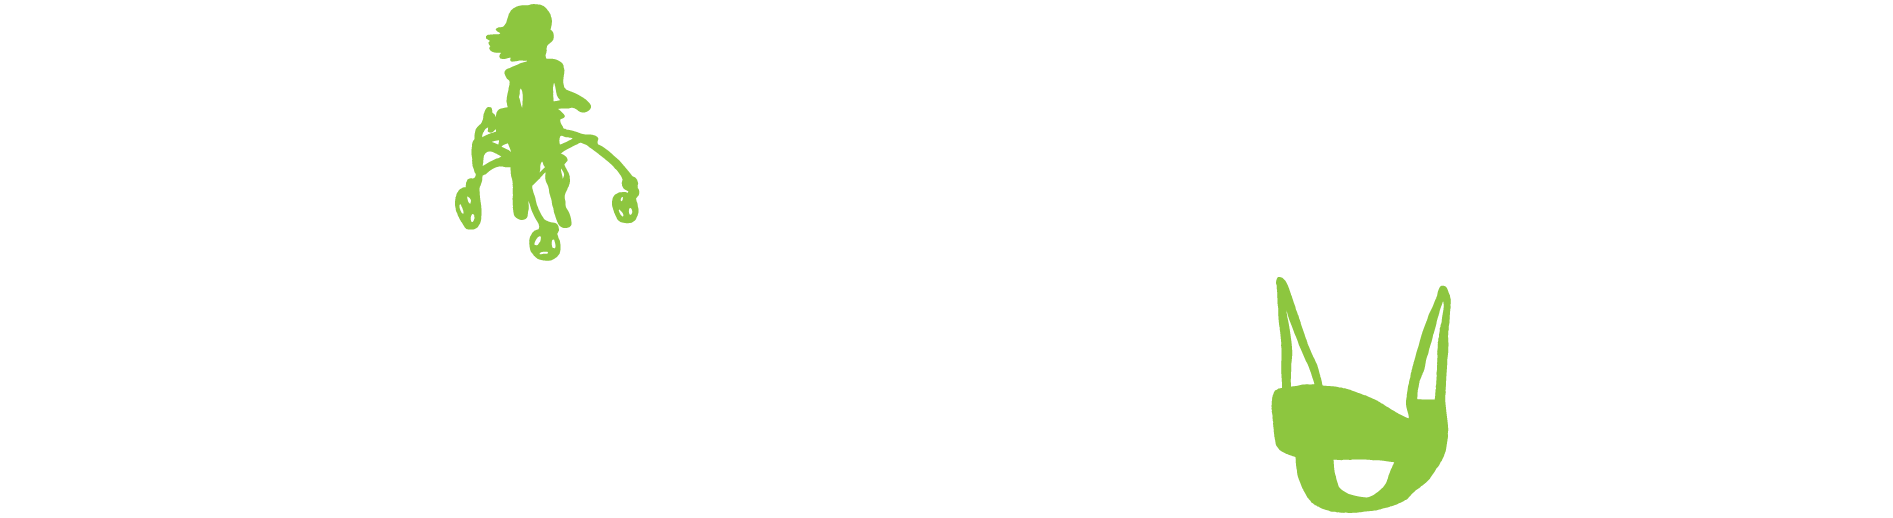 V03_harpers_playground-logotype_whitegreen-18.png